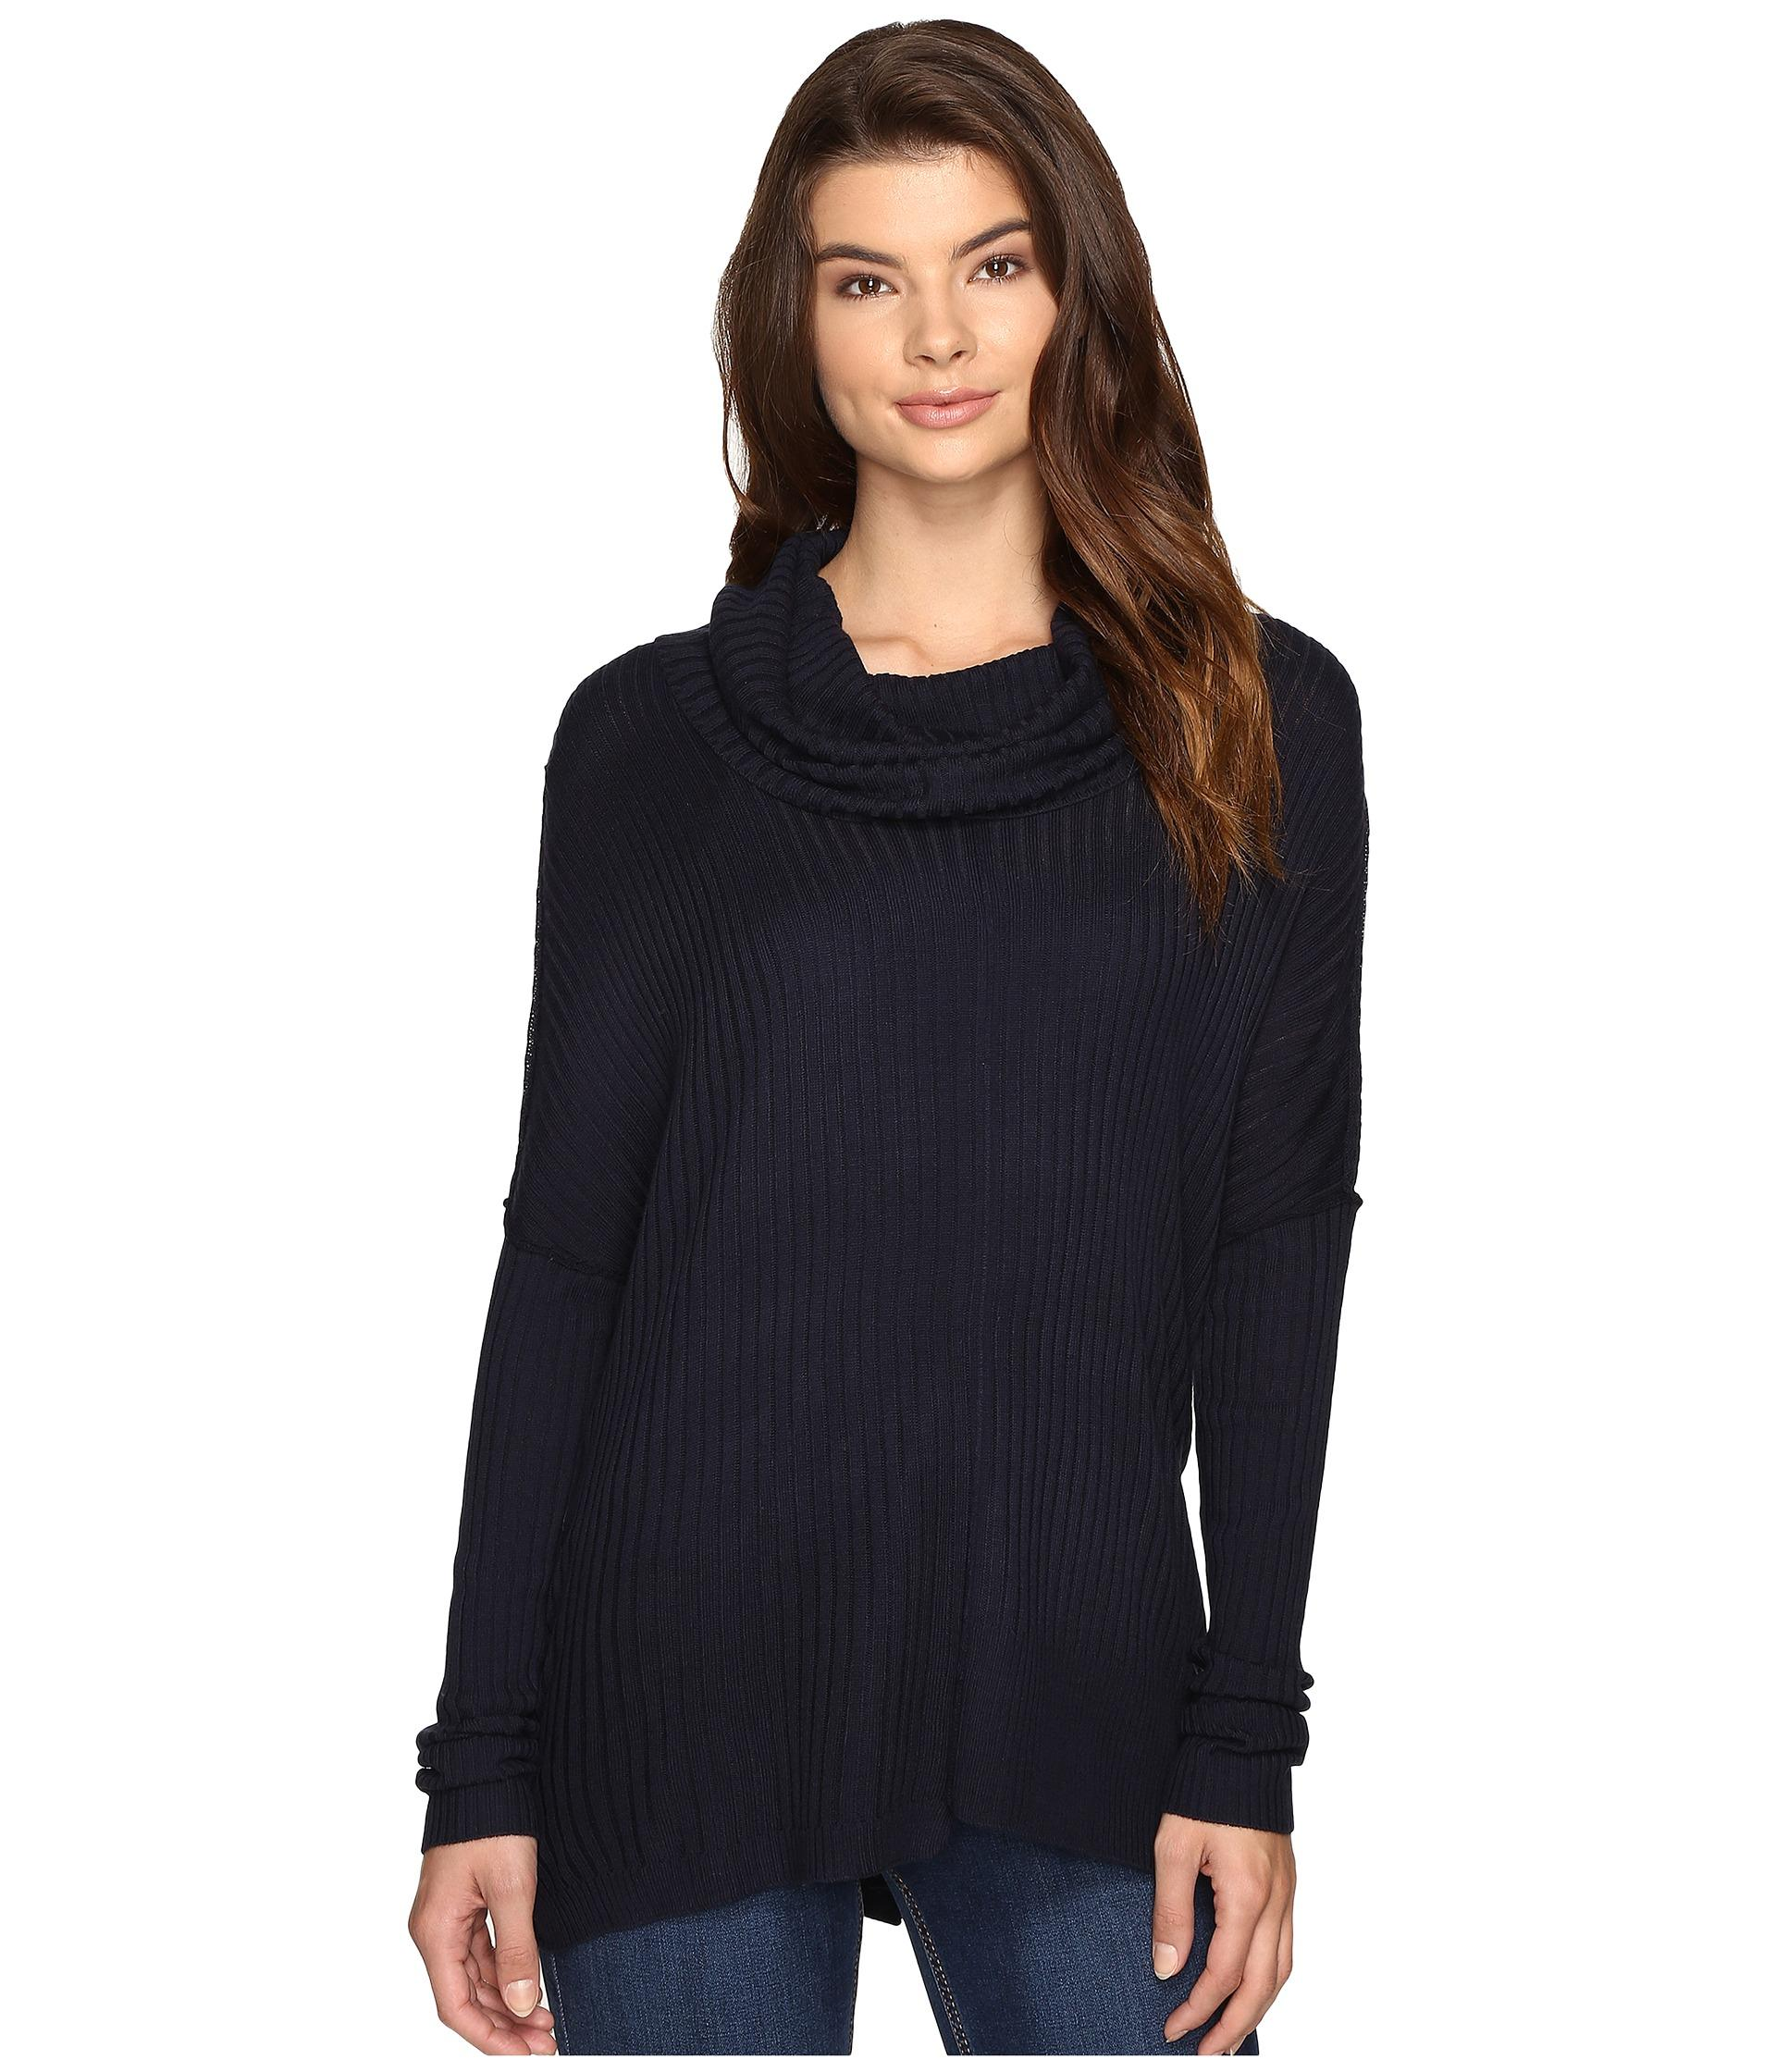 Brigitte bailey Algelie Cowl Neck Ribbed Sweater in Blue - Save 51 ...